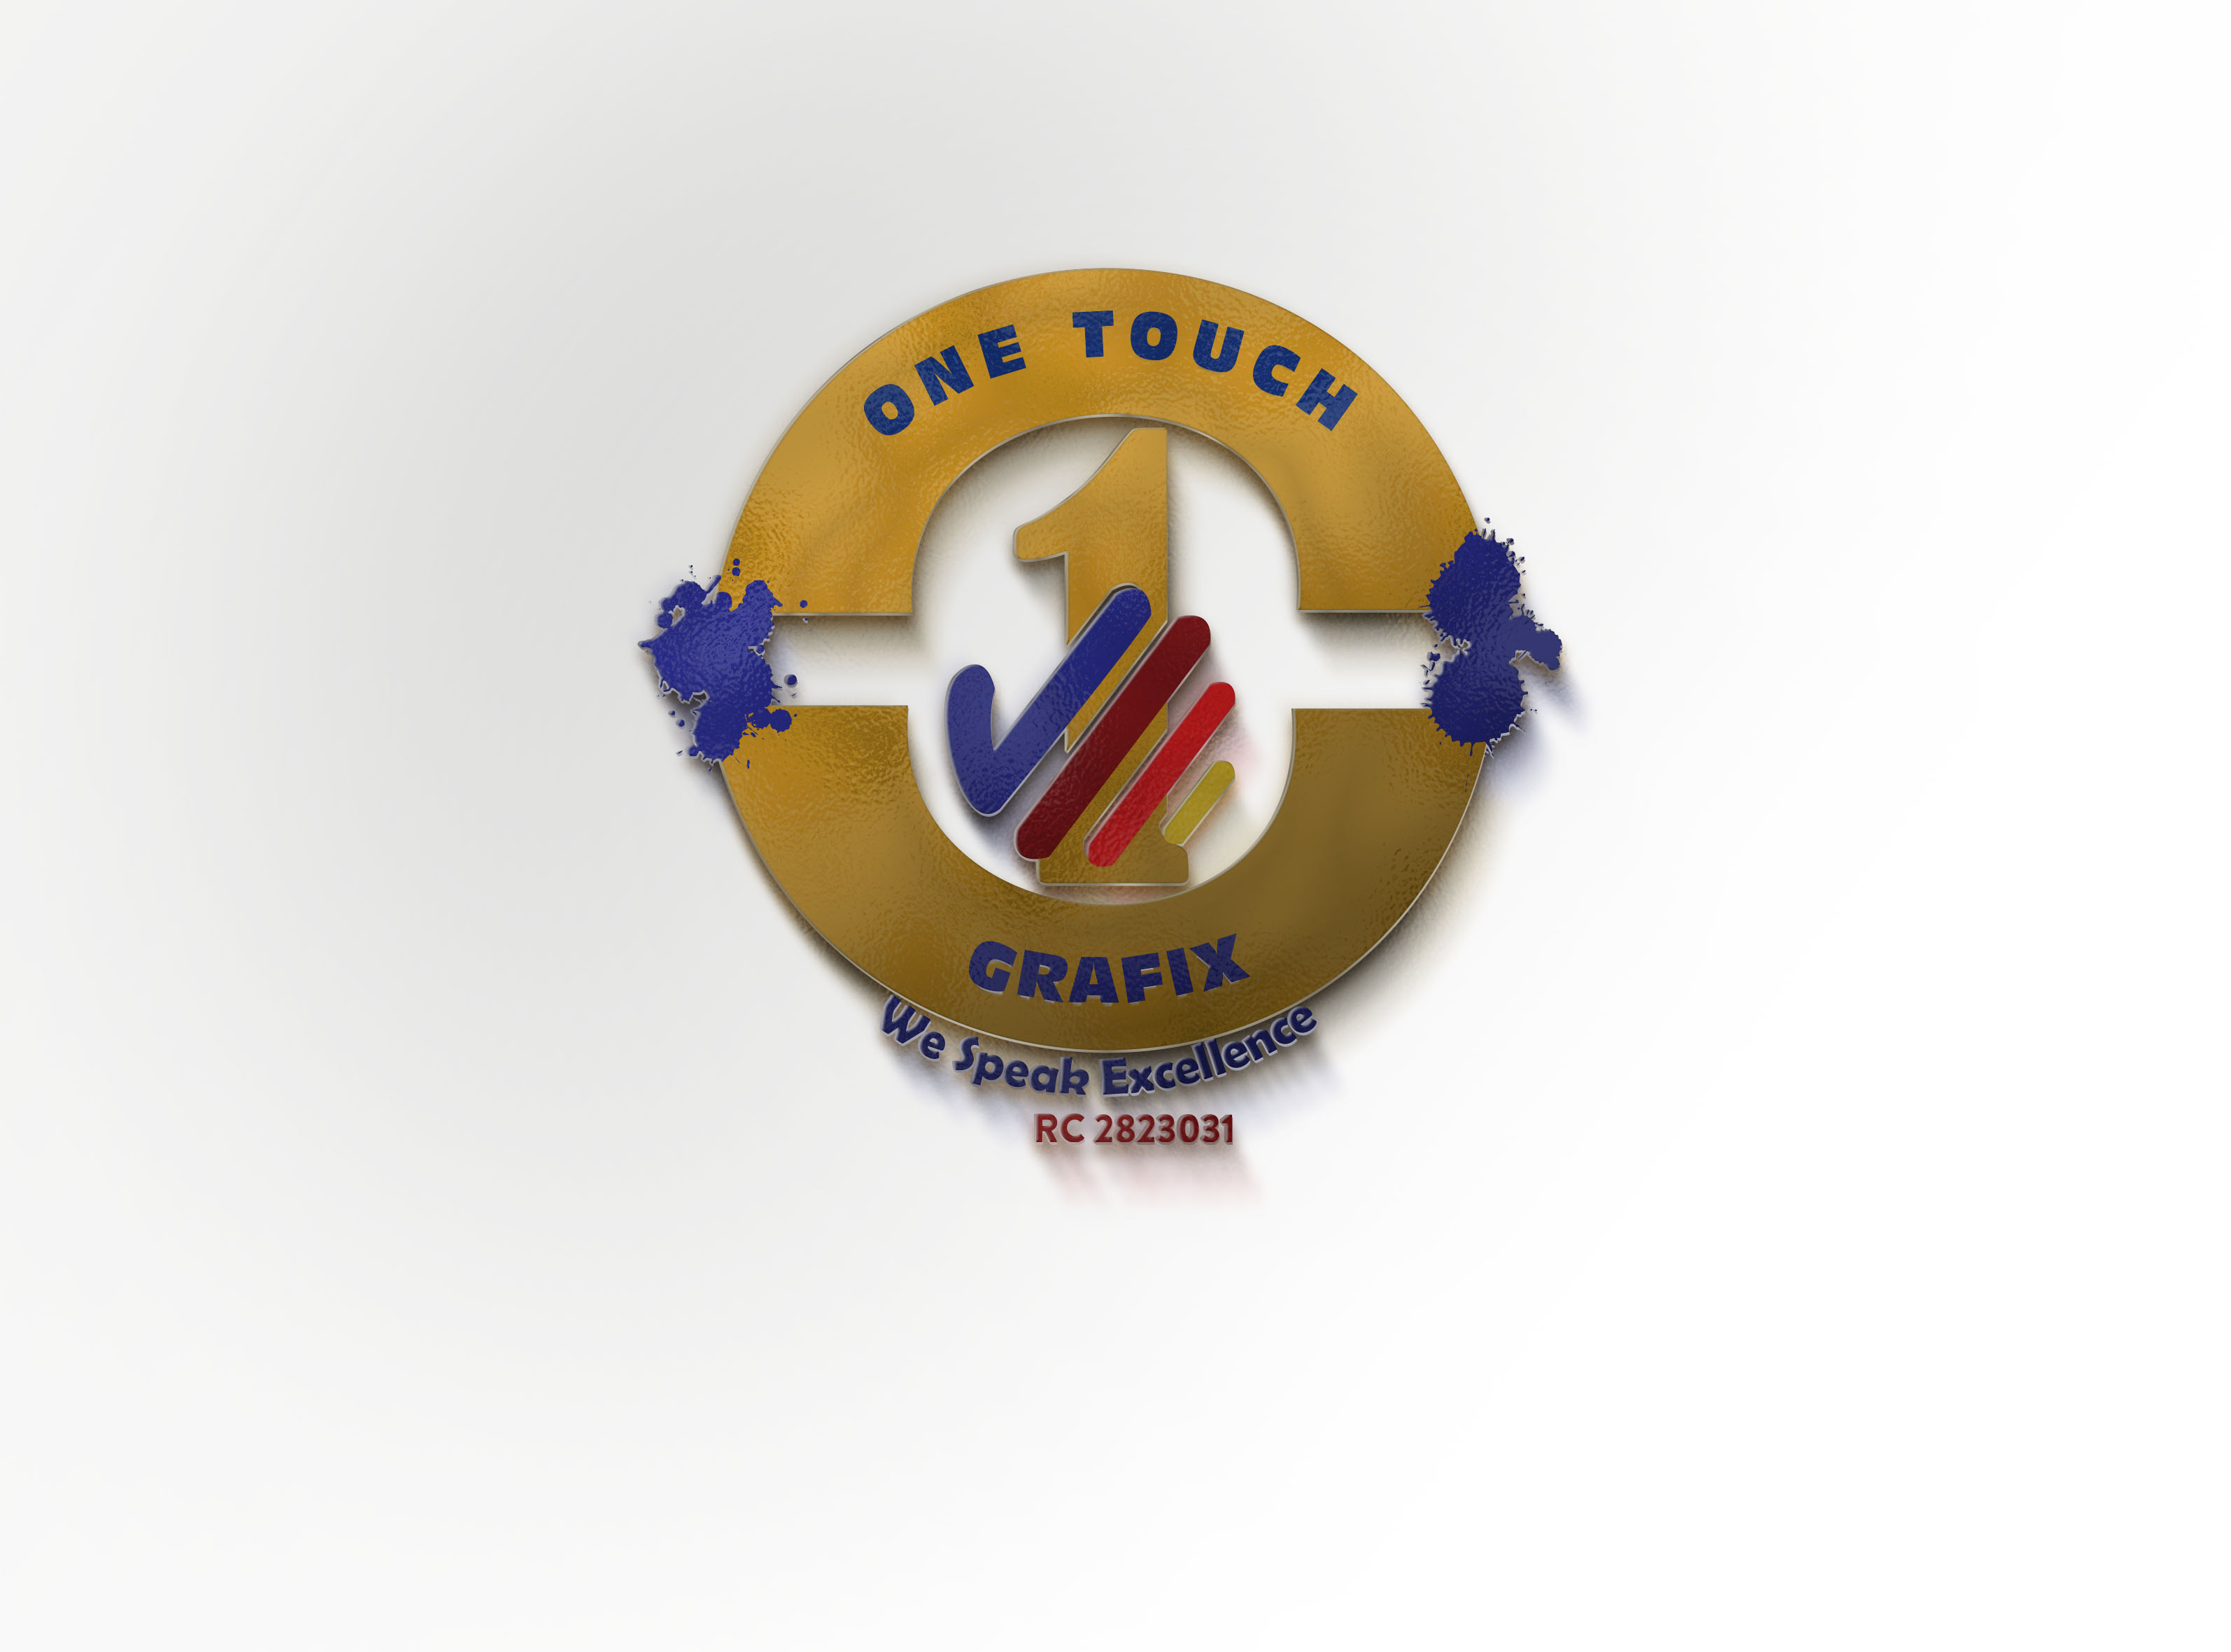 One Touch Grafix provider